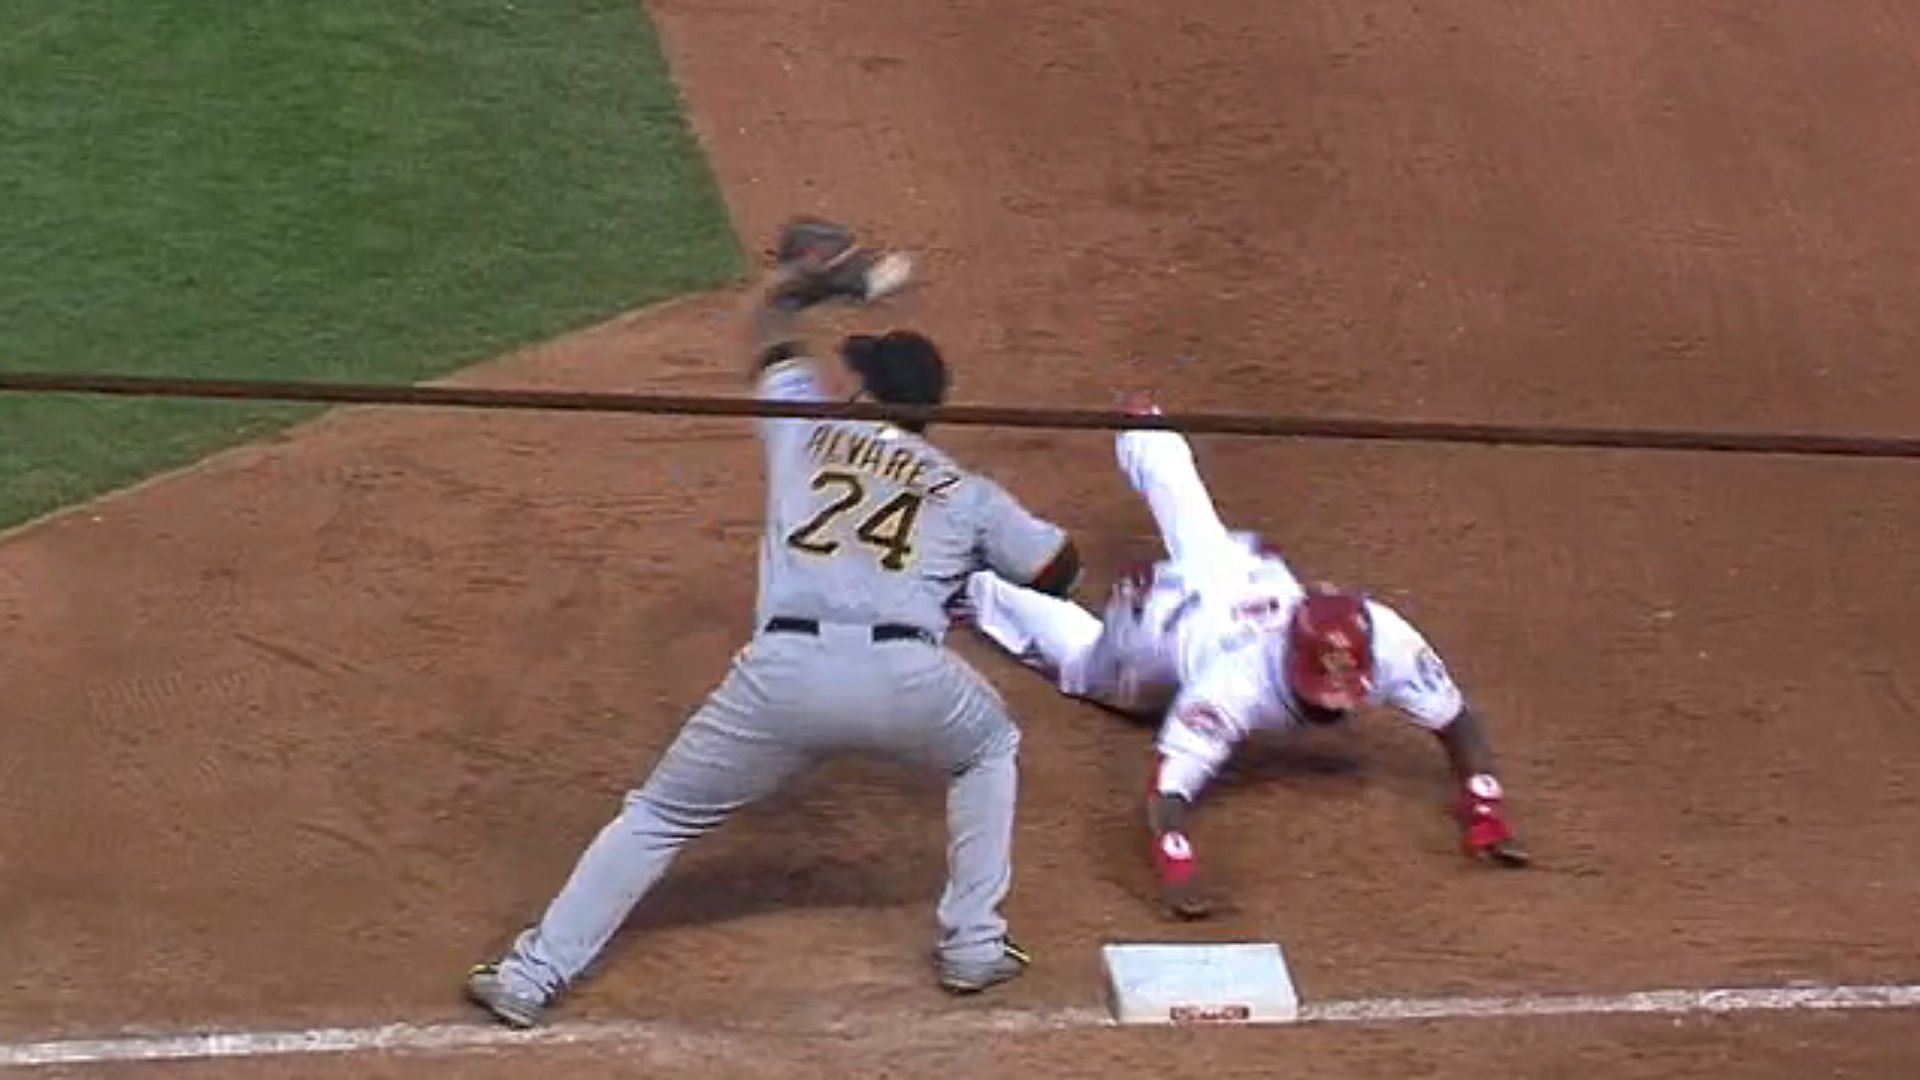 Gerrit Cole's pickoff throw tears hole in Pedro Alvarez's glove